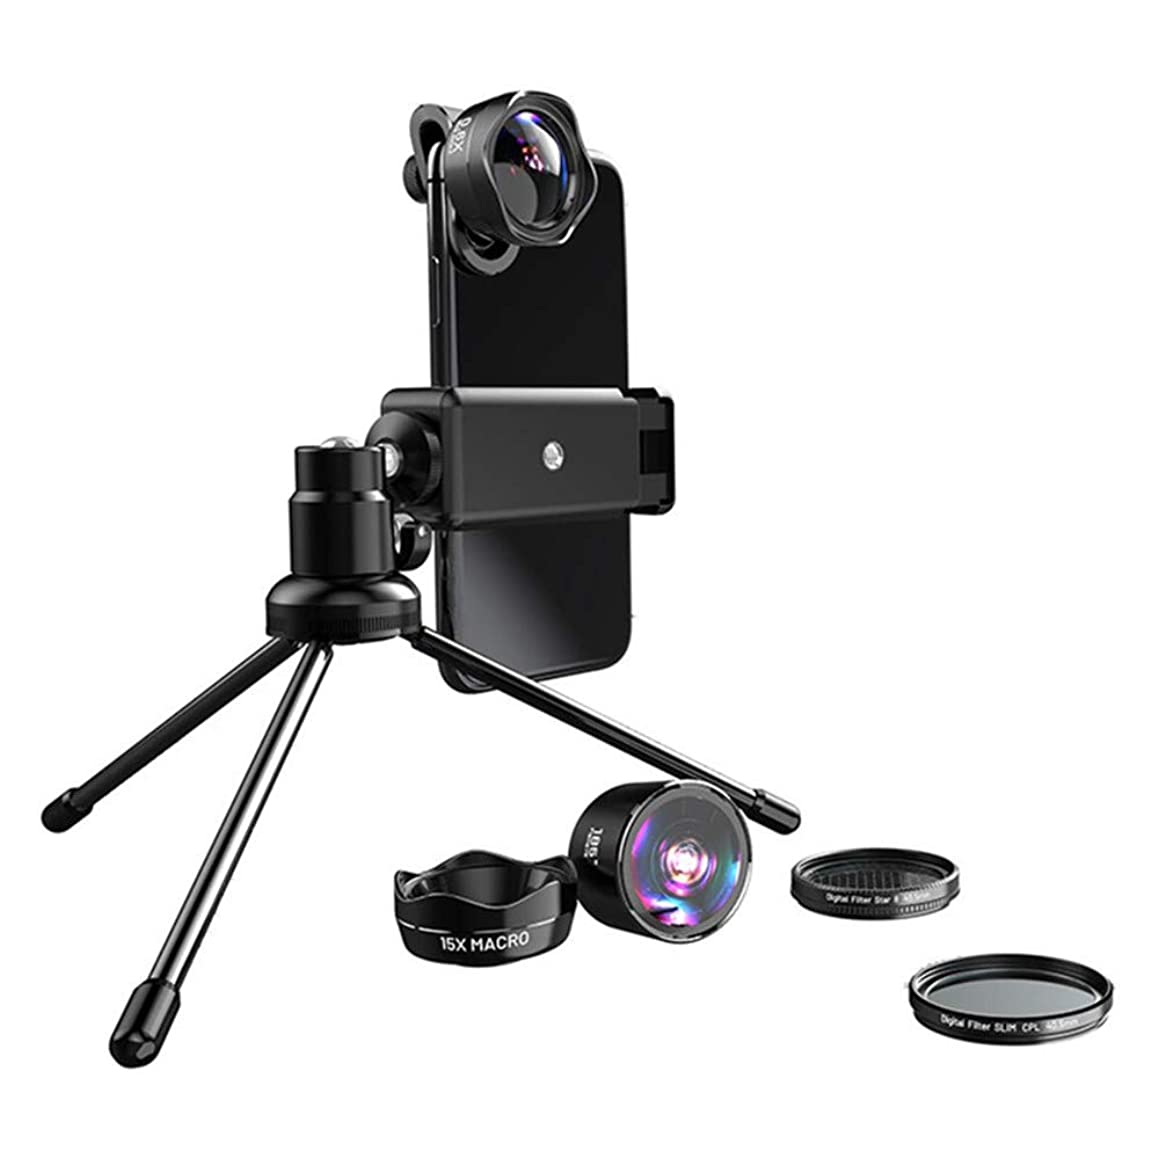 RYZRYZ 5-in-1 Camera Set, Mobile Phone Camera Lens, Wide-Angle Macro Polarizer Star Mirror externally Suitable for Any Type of Mobile Phone